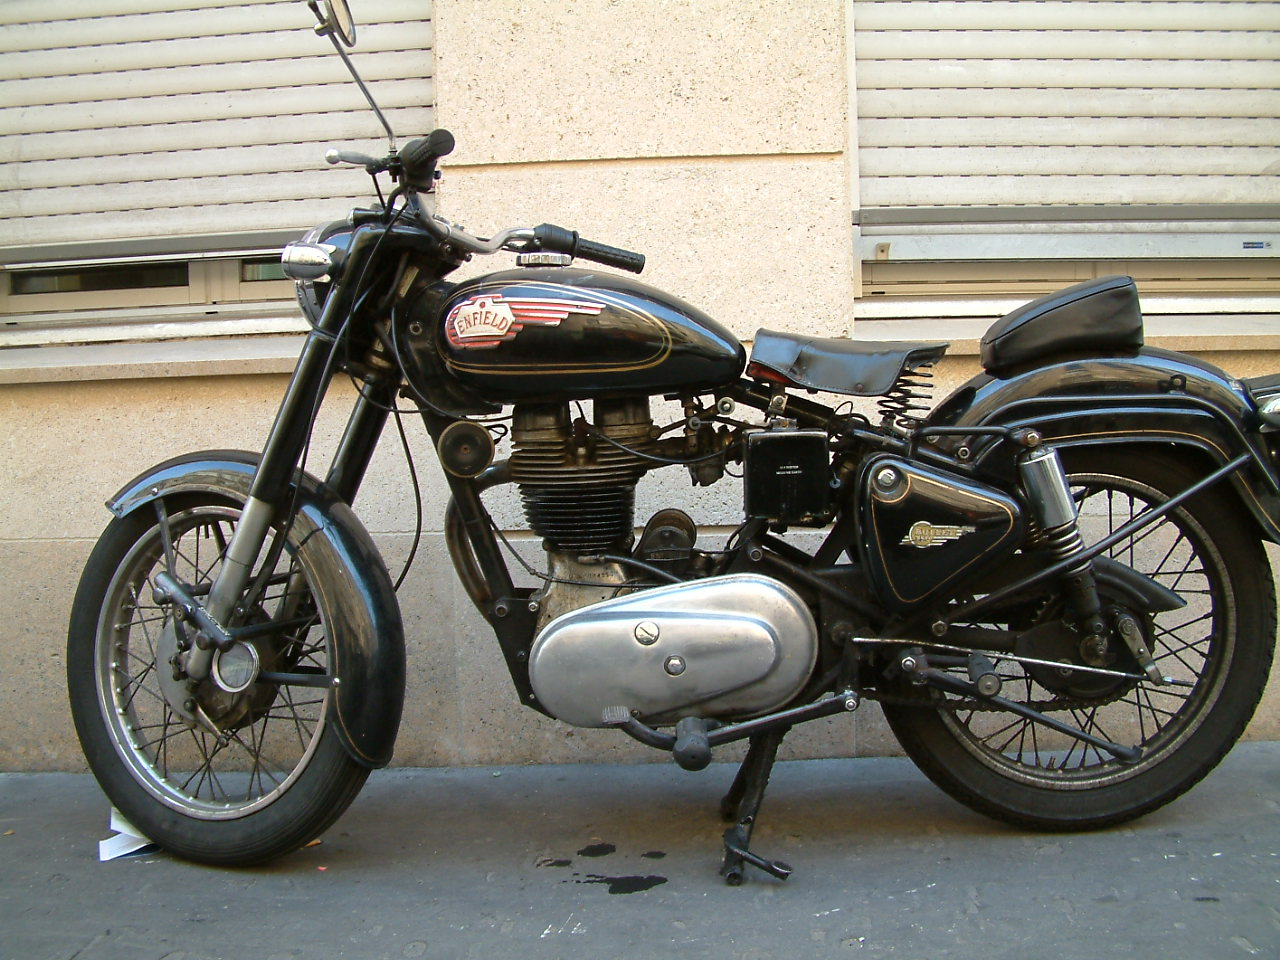 Royal Enfield Bullet 500 Army 2006 images #123594